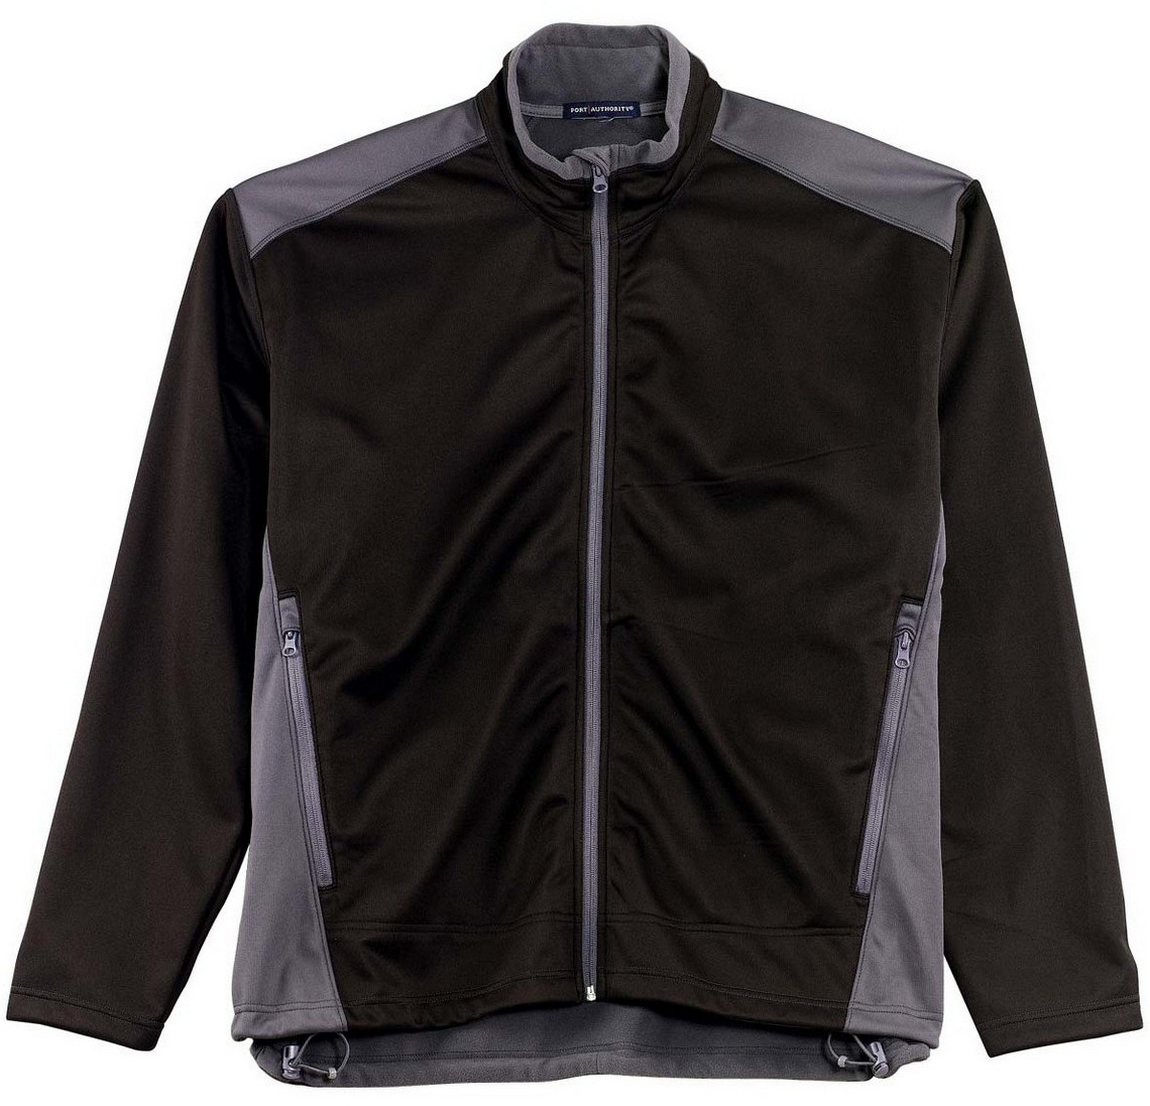 TWO-TONE SOFT SHELL JACKET, Black